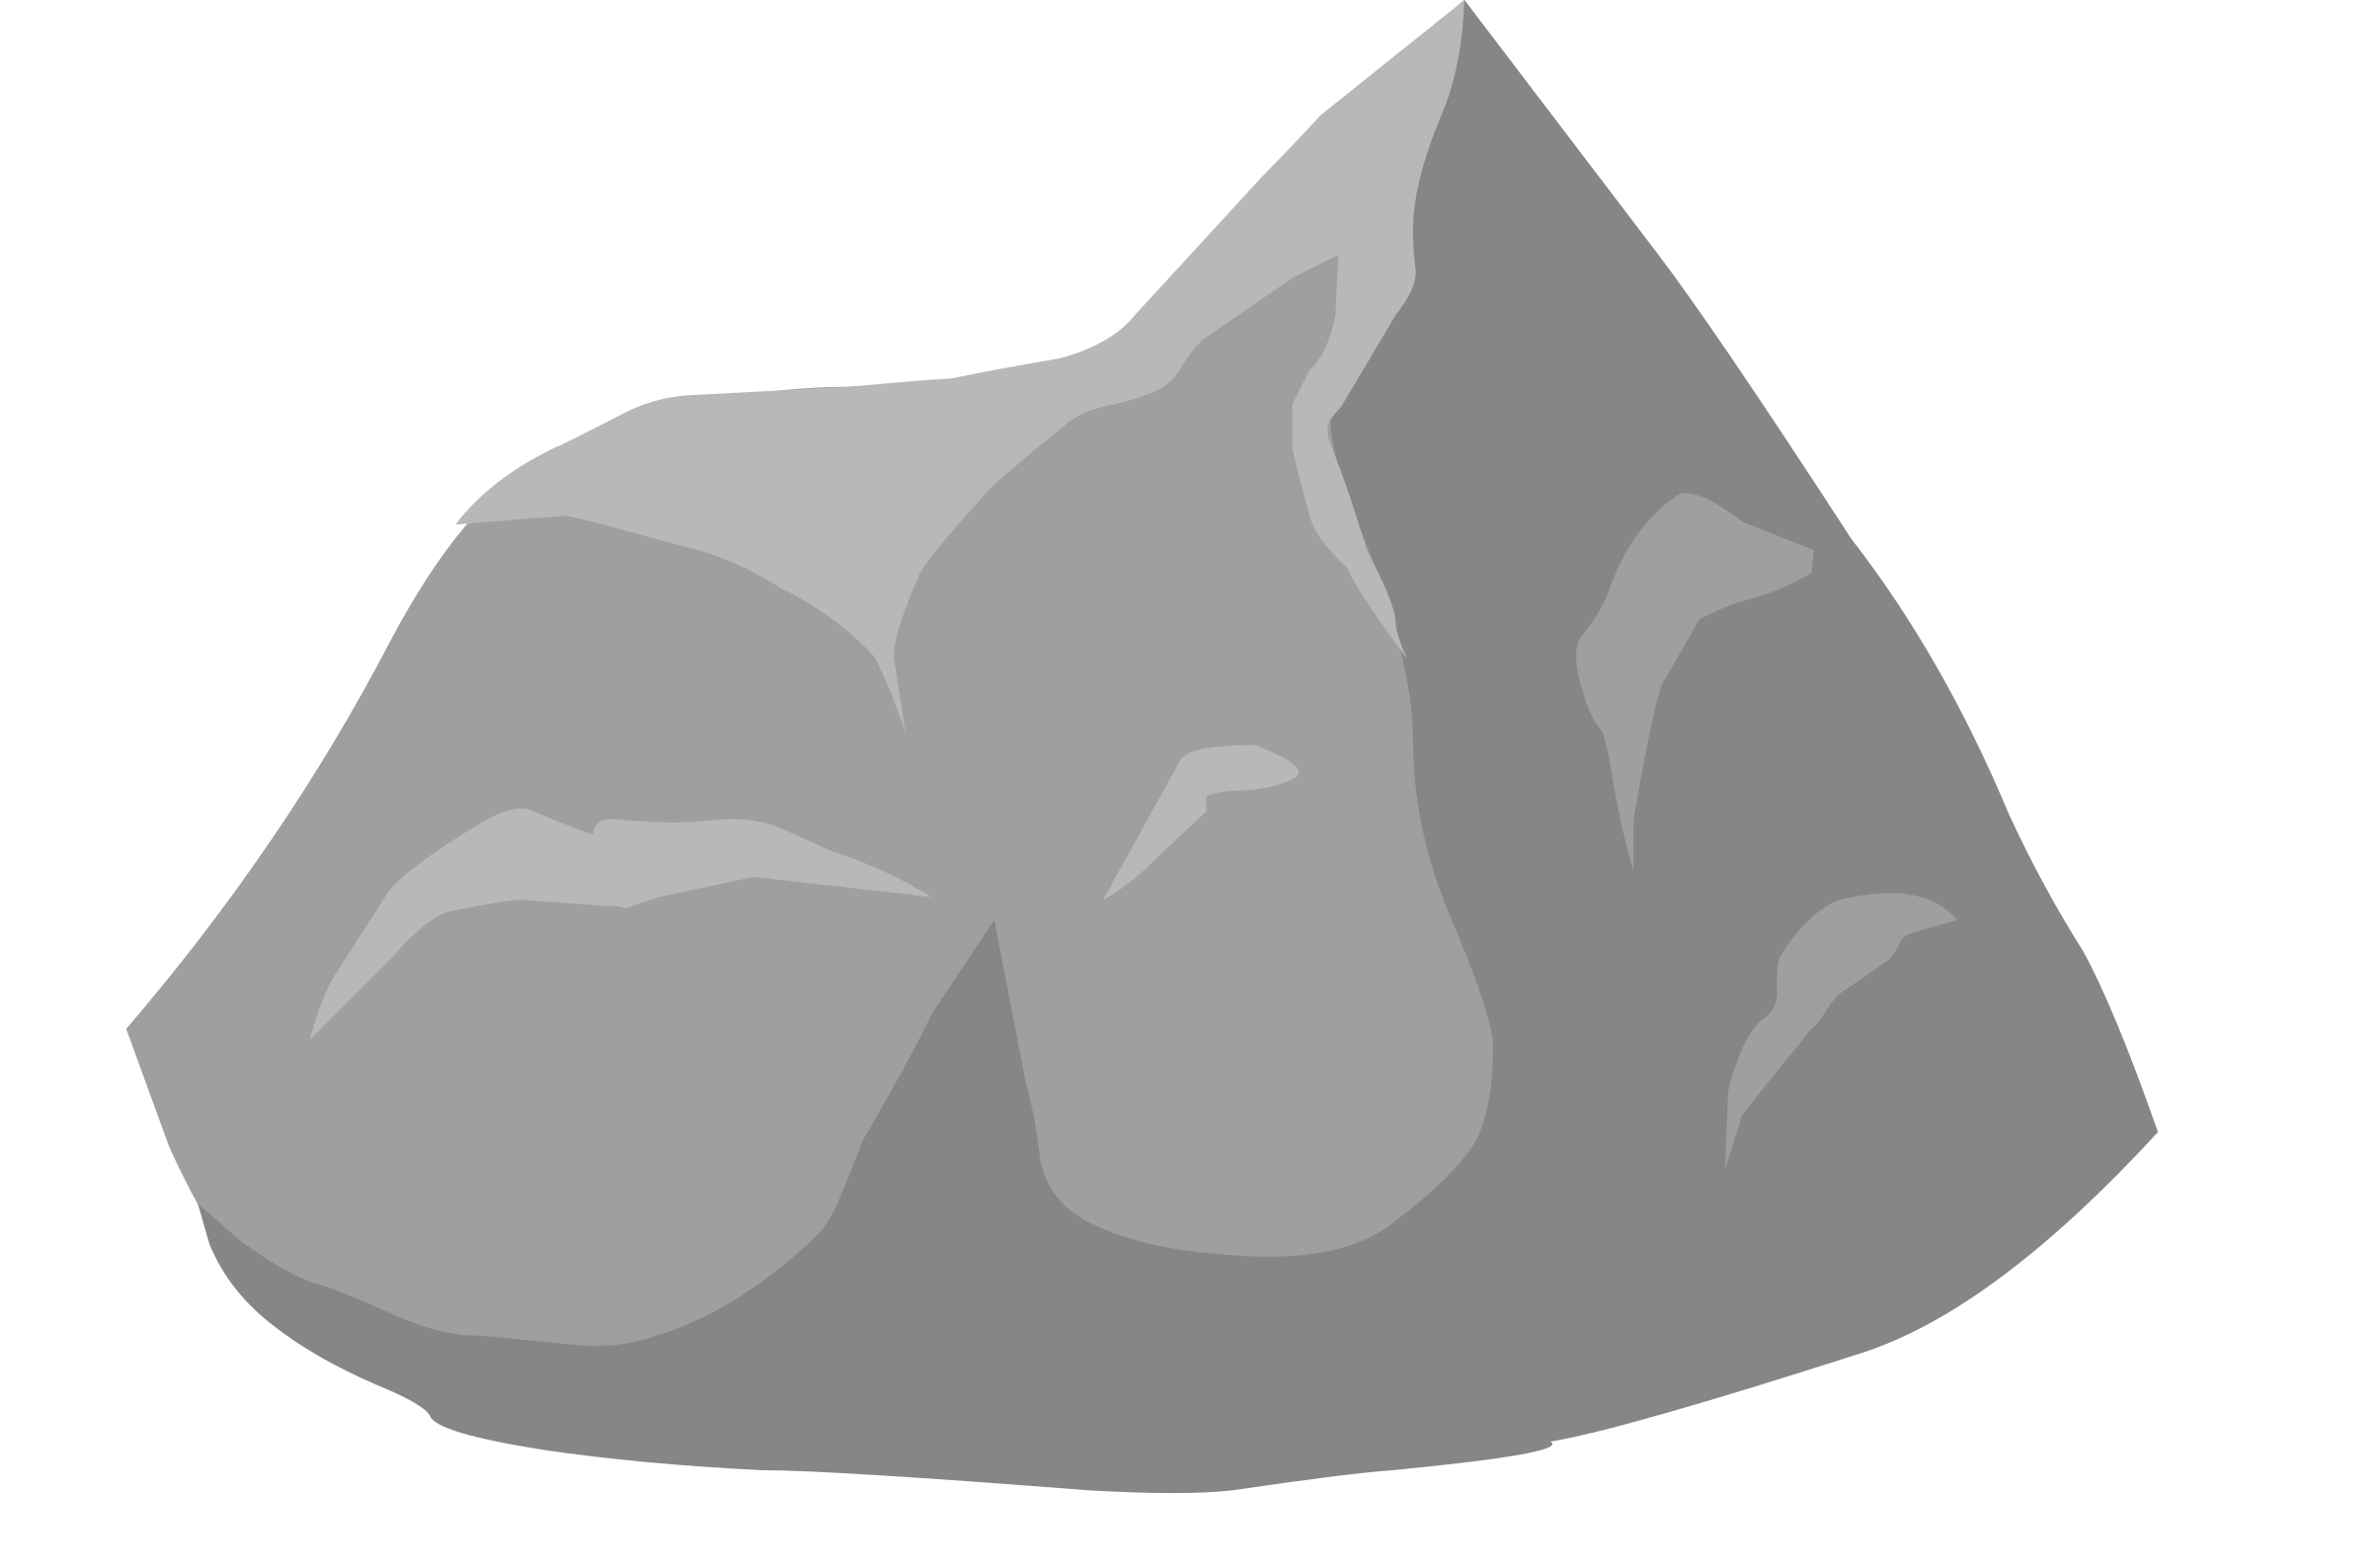 Images gallery for free. Boulder clipart stack rock